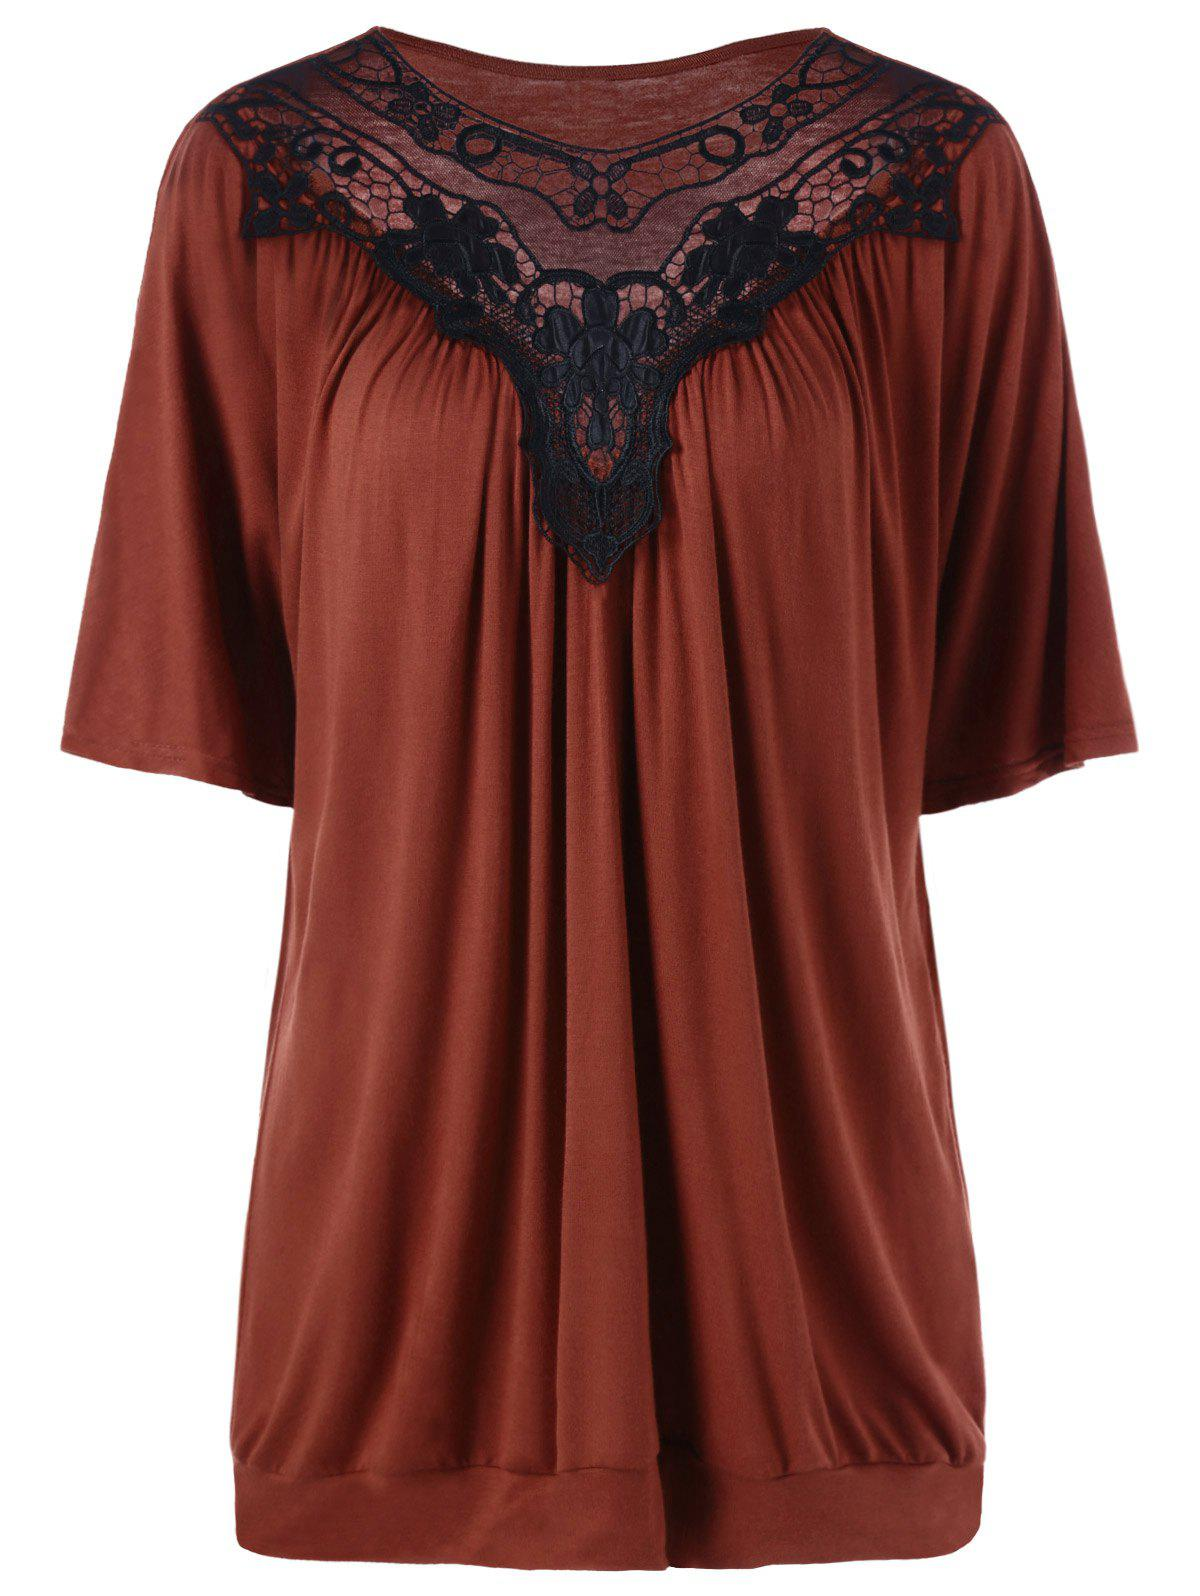 Plus Size Lace Panel Long T-ShirtWOMEN<br><br>Size: 3XL; Color: SPICE; Material: Cotton Blends,Polyester; Shirt Length: Long; Sleeve Length: Short; Collar: Scoop Neck; Style: Casual; Season: Spring,Summer; Embellishment: Lace; Pattern Type: Others; Weight: 0.3500kg; Package Contents: 1 x Tee;